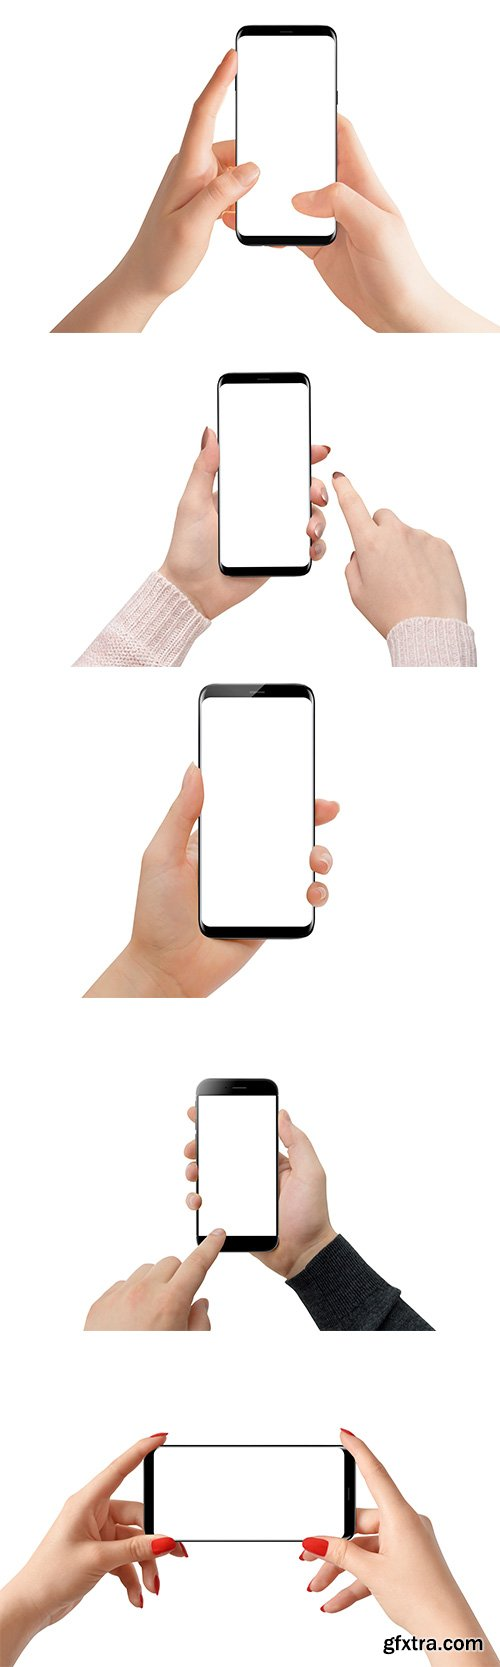 Hand Holding Modern Smartphone Isolated - 15xJPGs